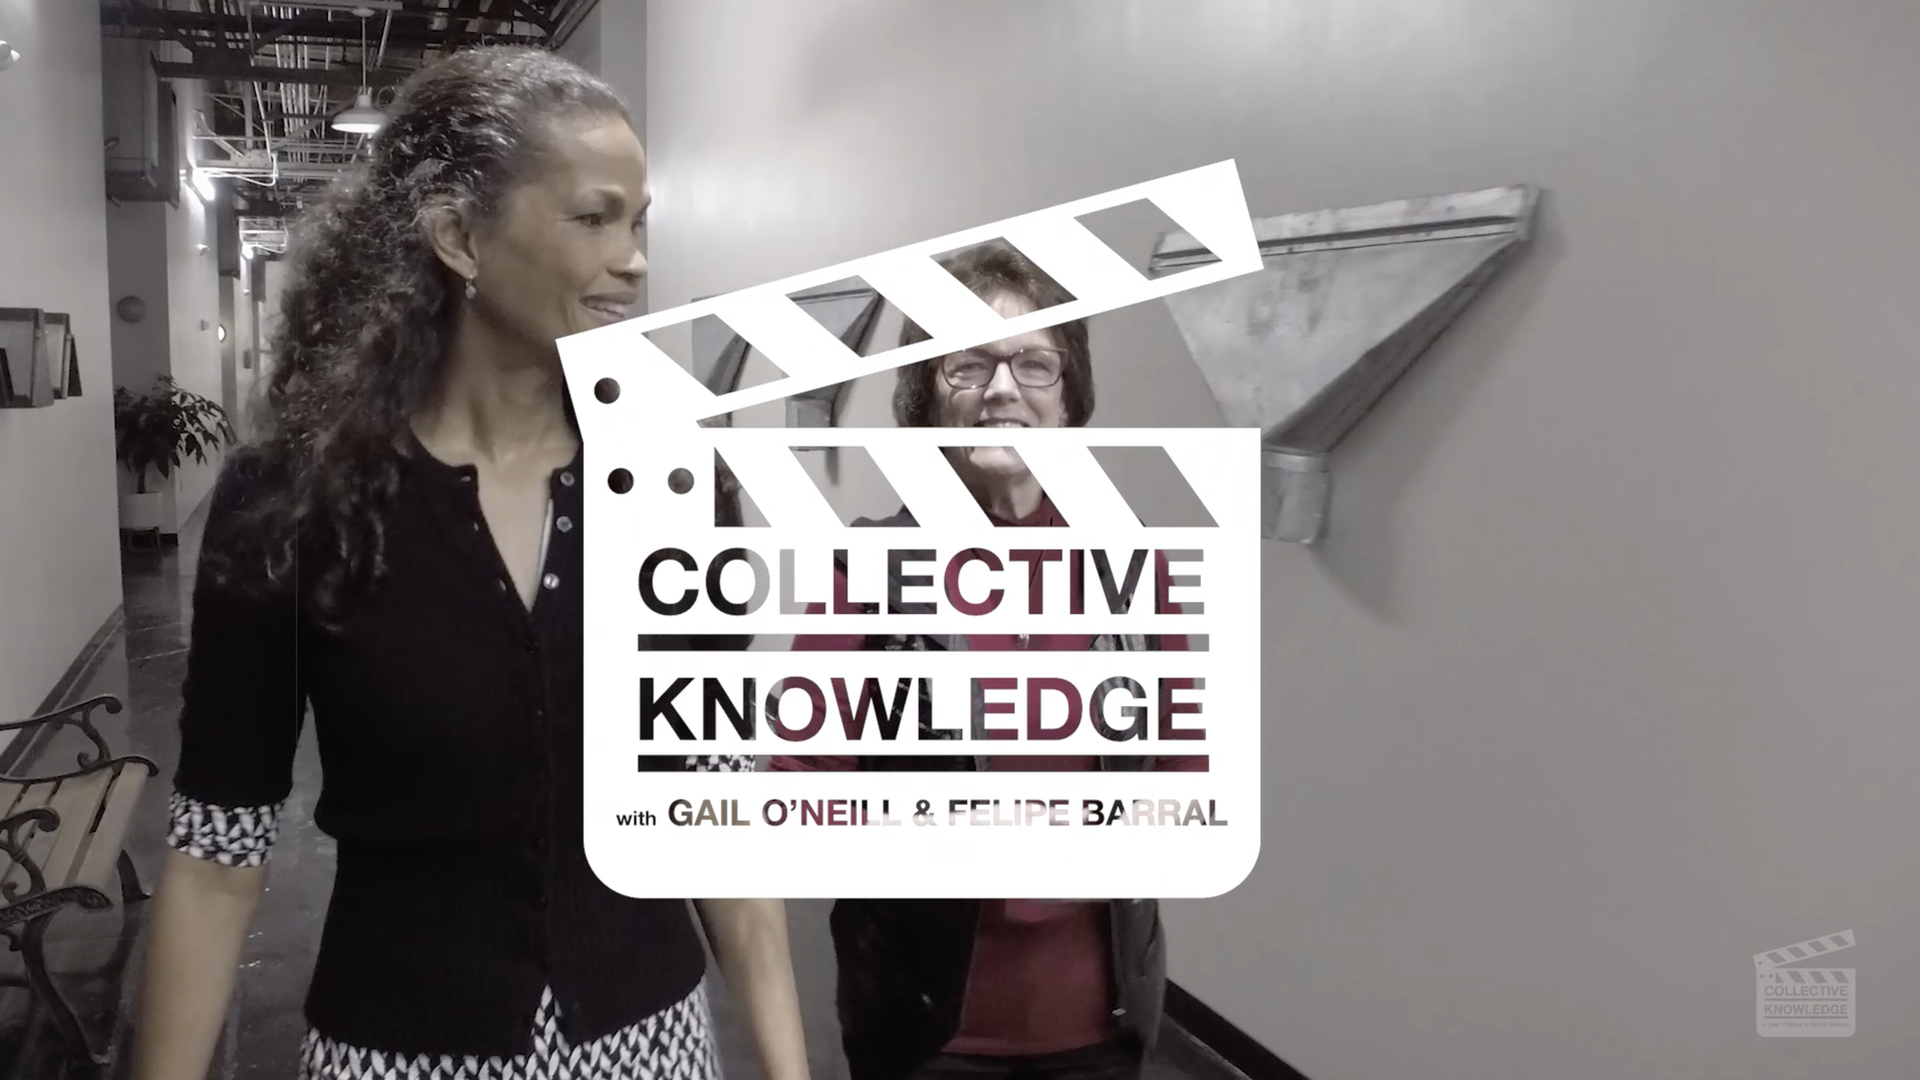 Collective Knowledge Episode 2 with Susan Bennett, the original voice of Siri